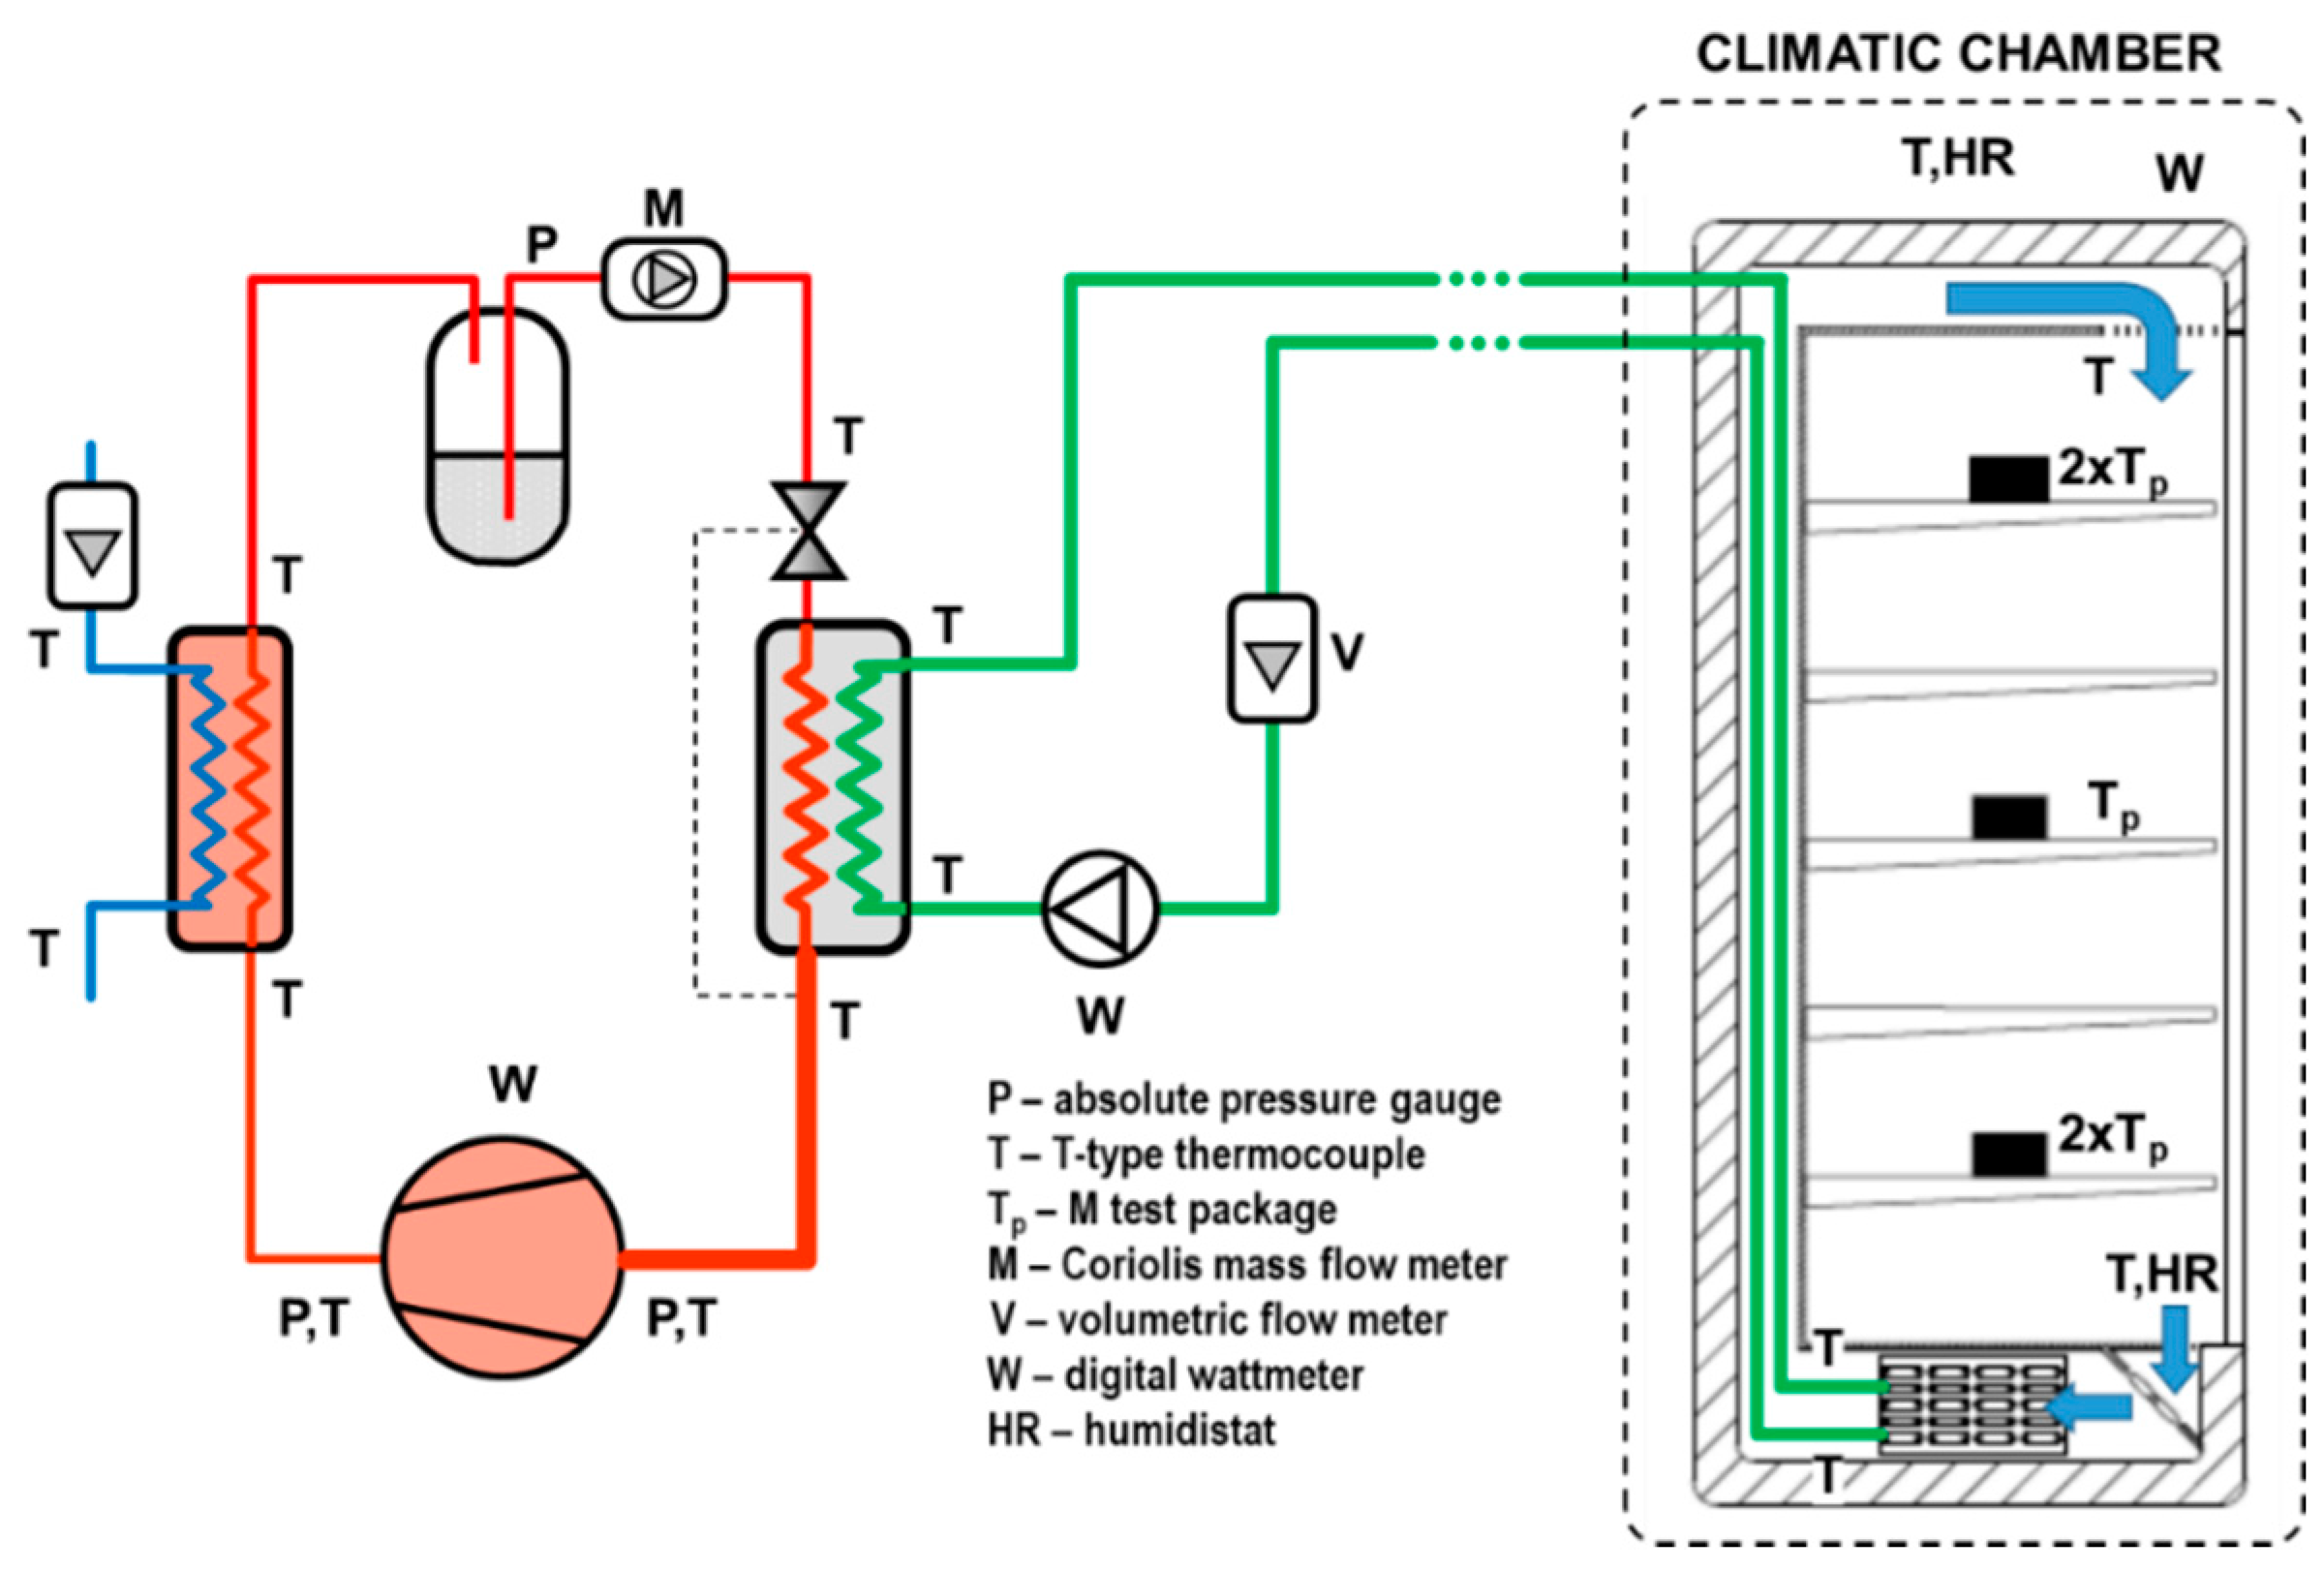 Electrical Diagram Training besides How To Read Electrical Wiring Diagrams furthermore Lg Room Air Conditioner Wiring Diagram in addition Industrial Maintenance Mechanic further Schematic Diagram Of Indirect Refrigeration System. on wiring diagrams refrigeration